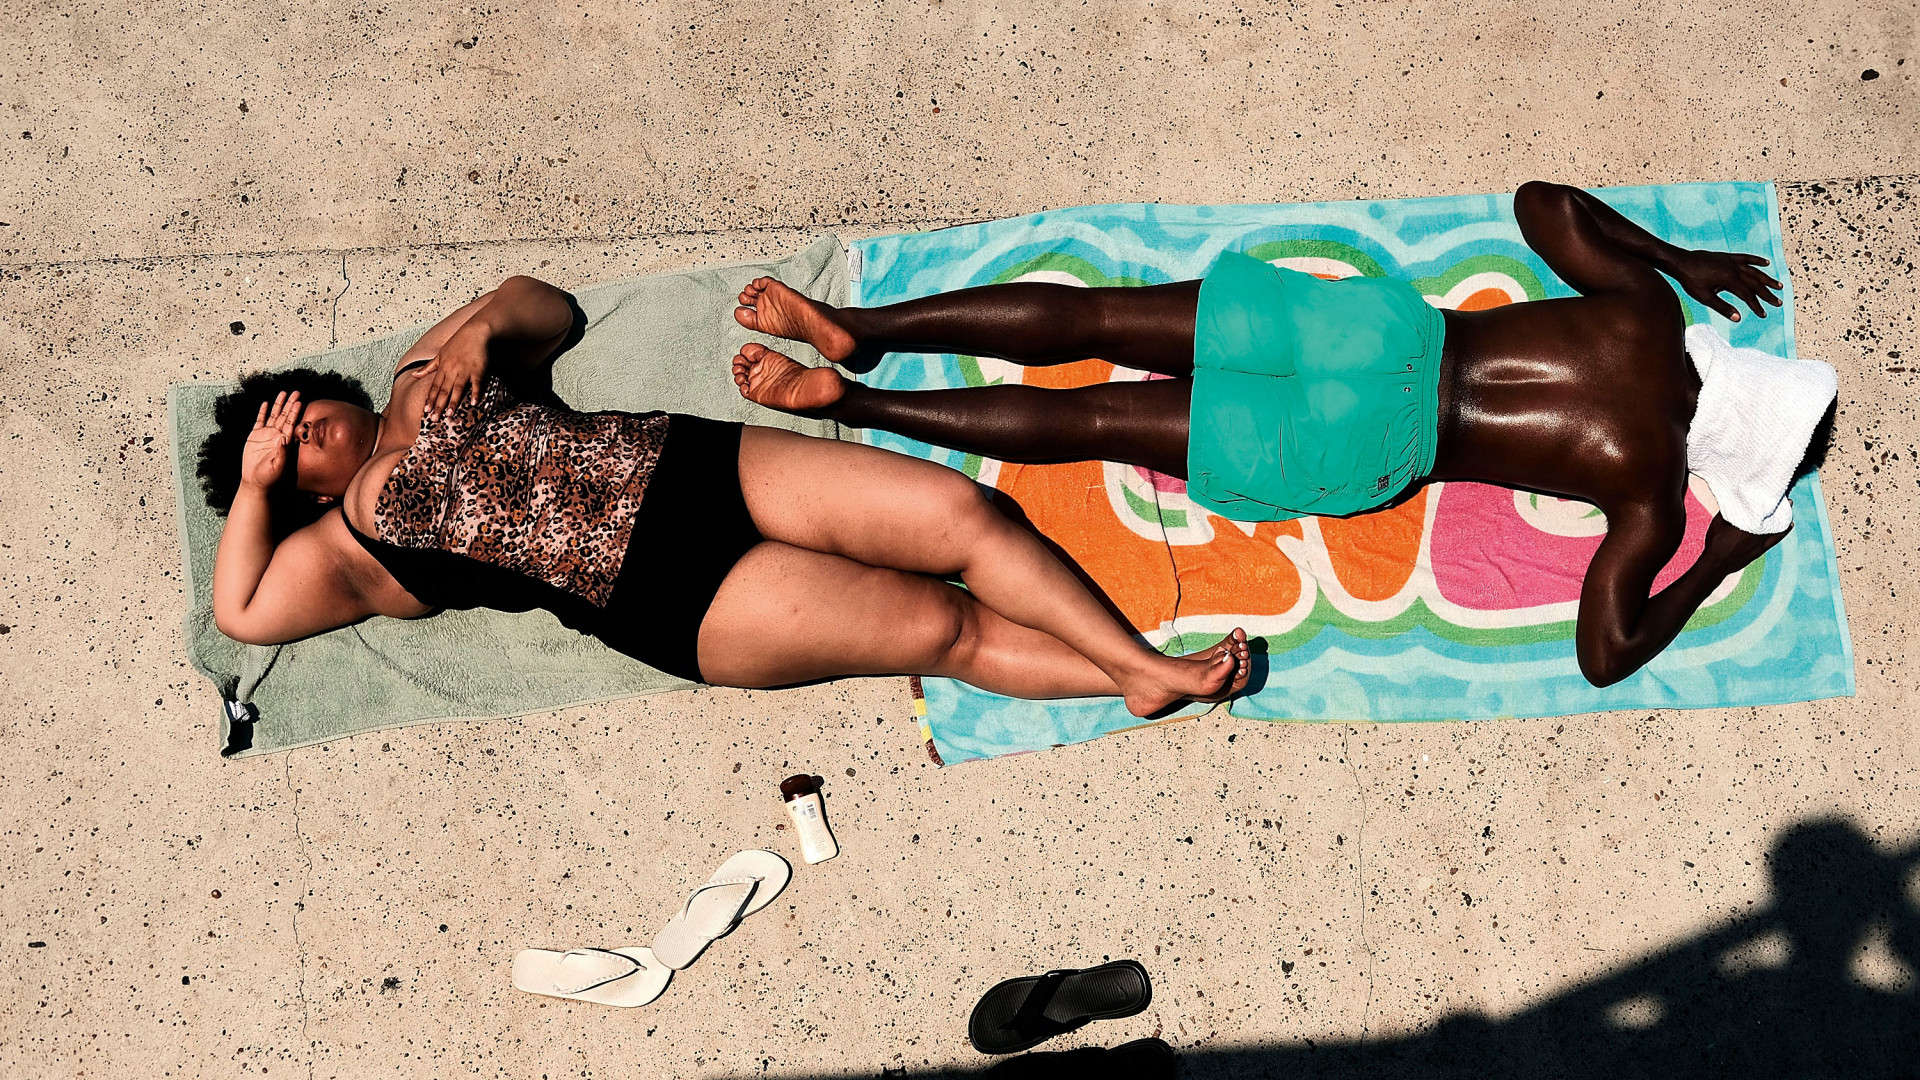 Sunbathers at Astoria Pool in Queens, New York City